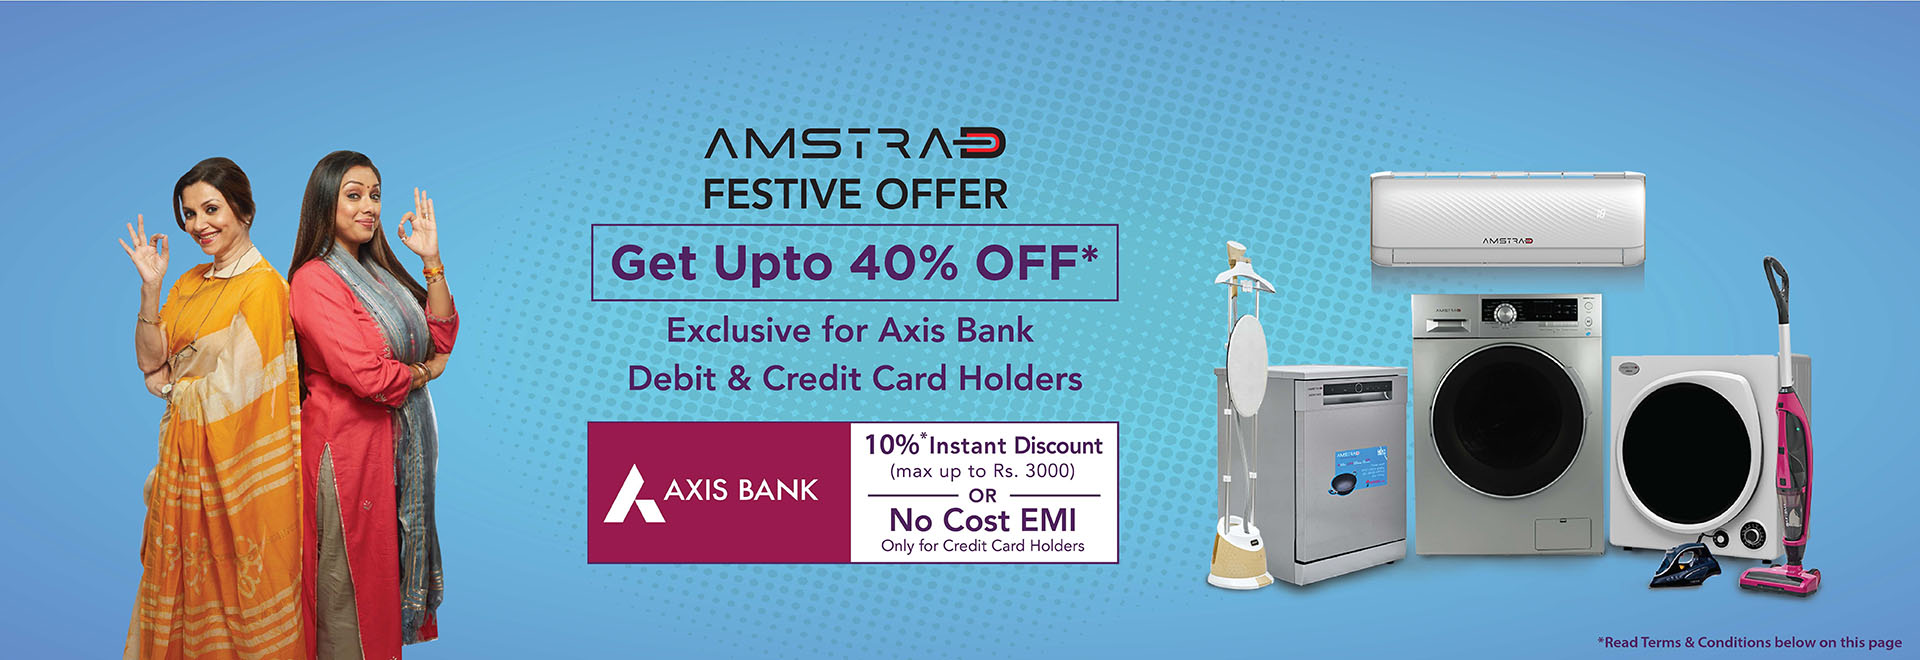 Amstrad-Axis-Bank-Offer-BANNER